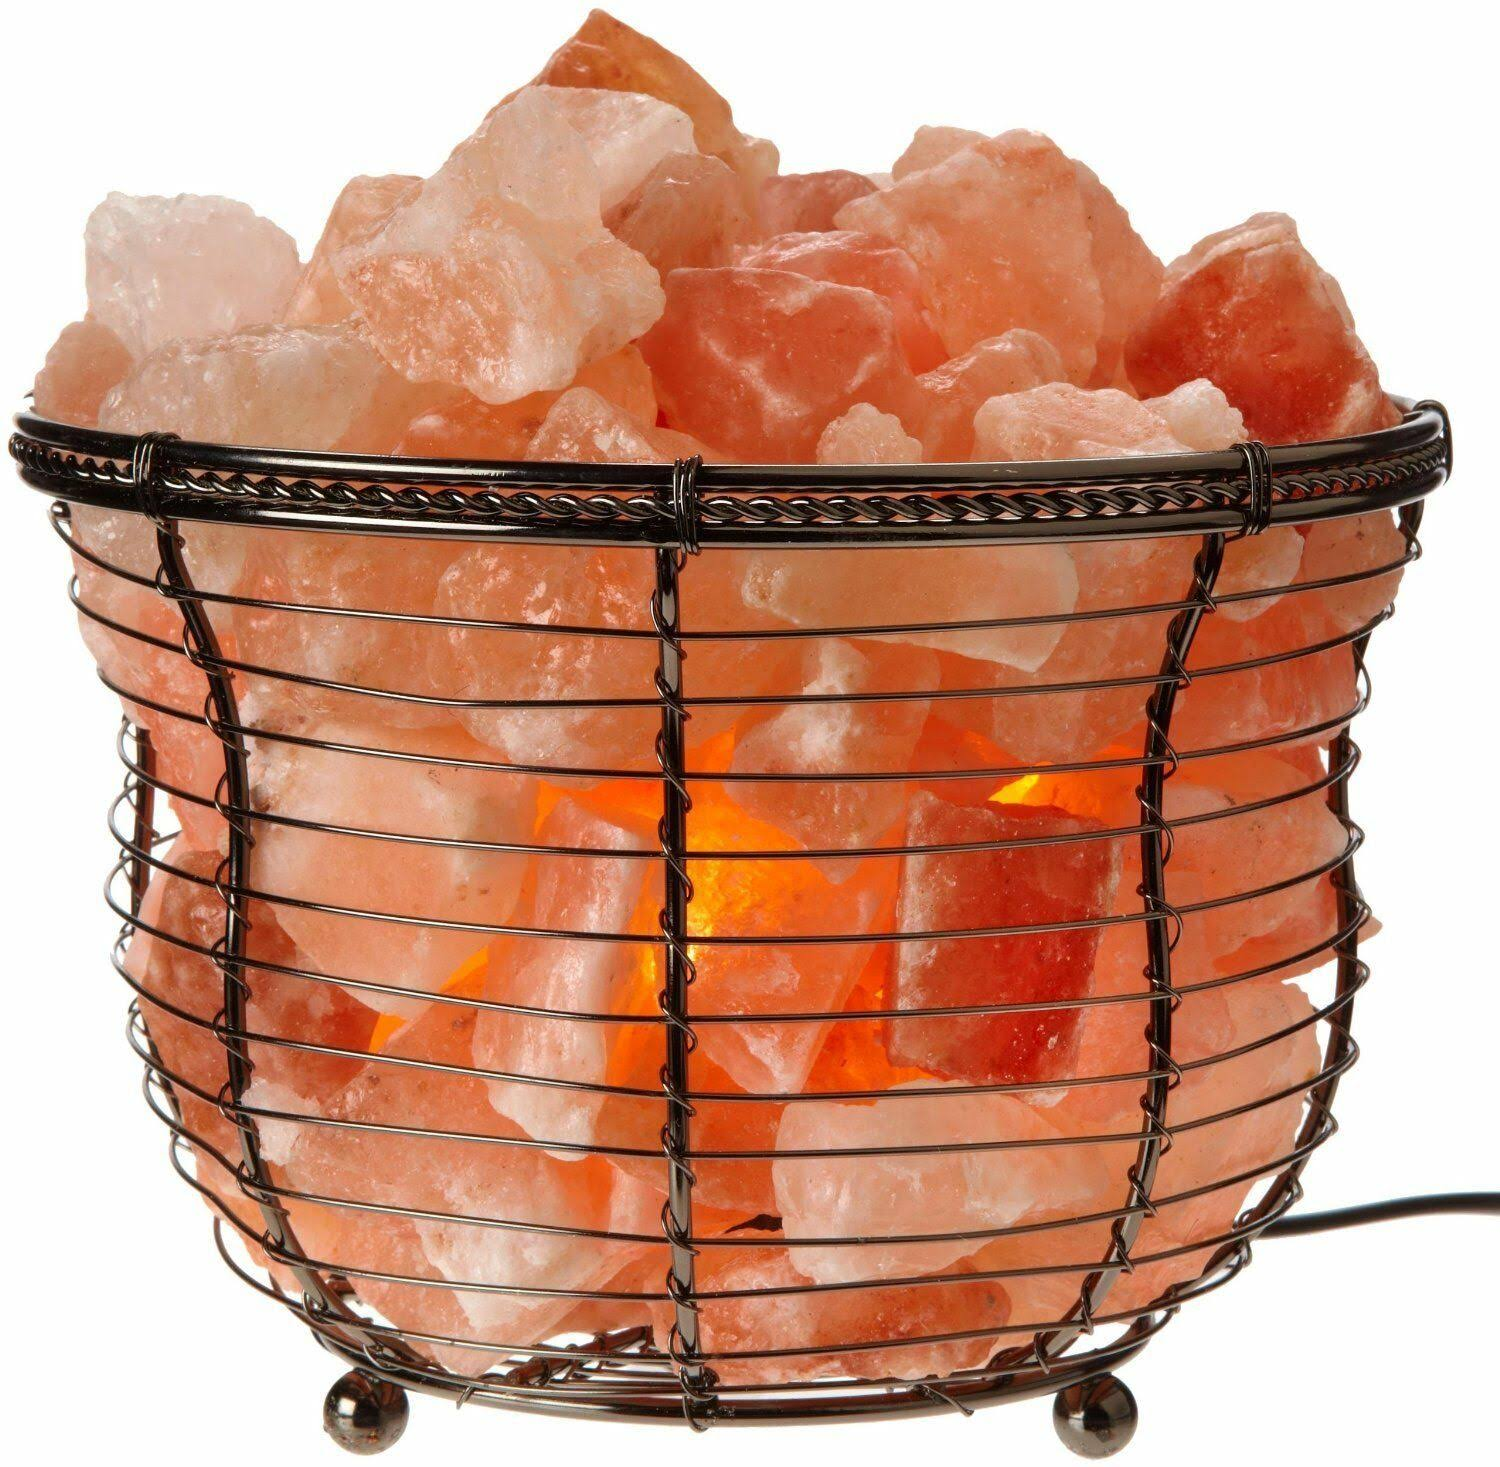 Wbm HImlayan Rock Salt Basket Lamp - Pink, 6.75""